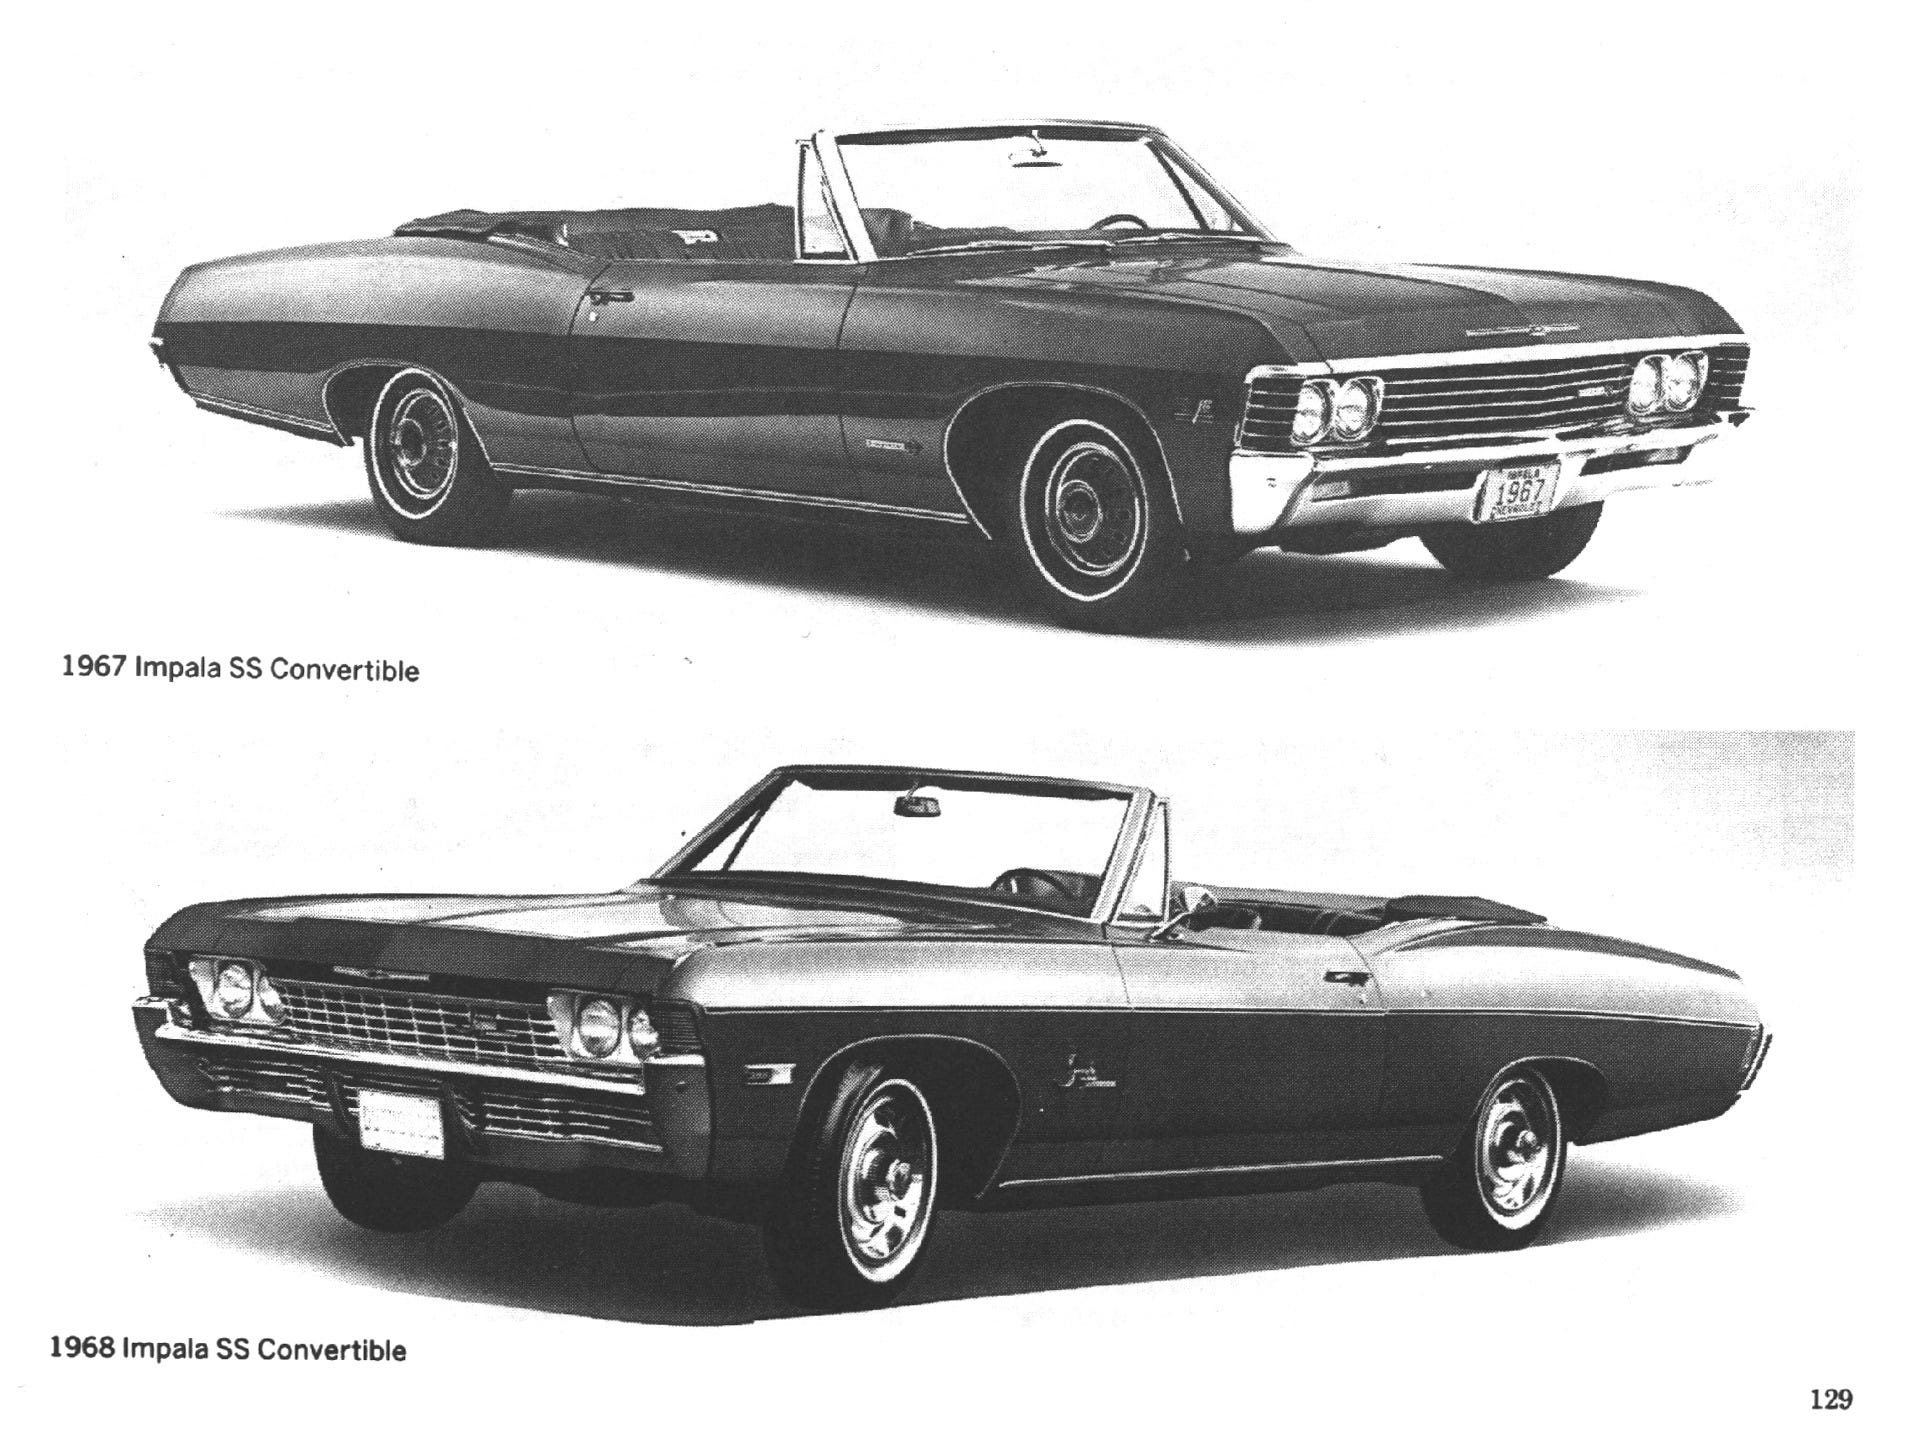 Top 1967 Chevrolet Impala SS convertible, bottom, 1968 Impala SS convertible.